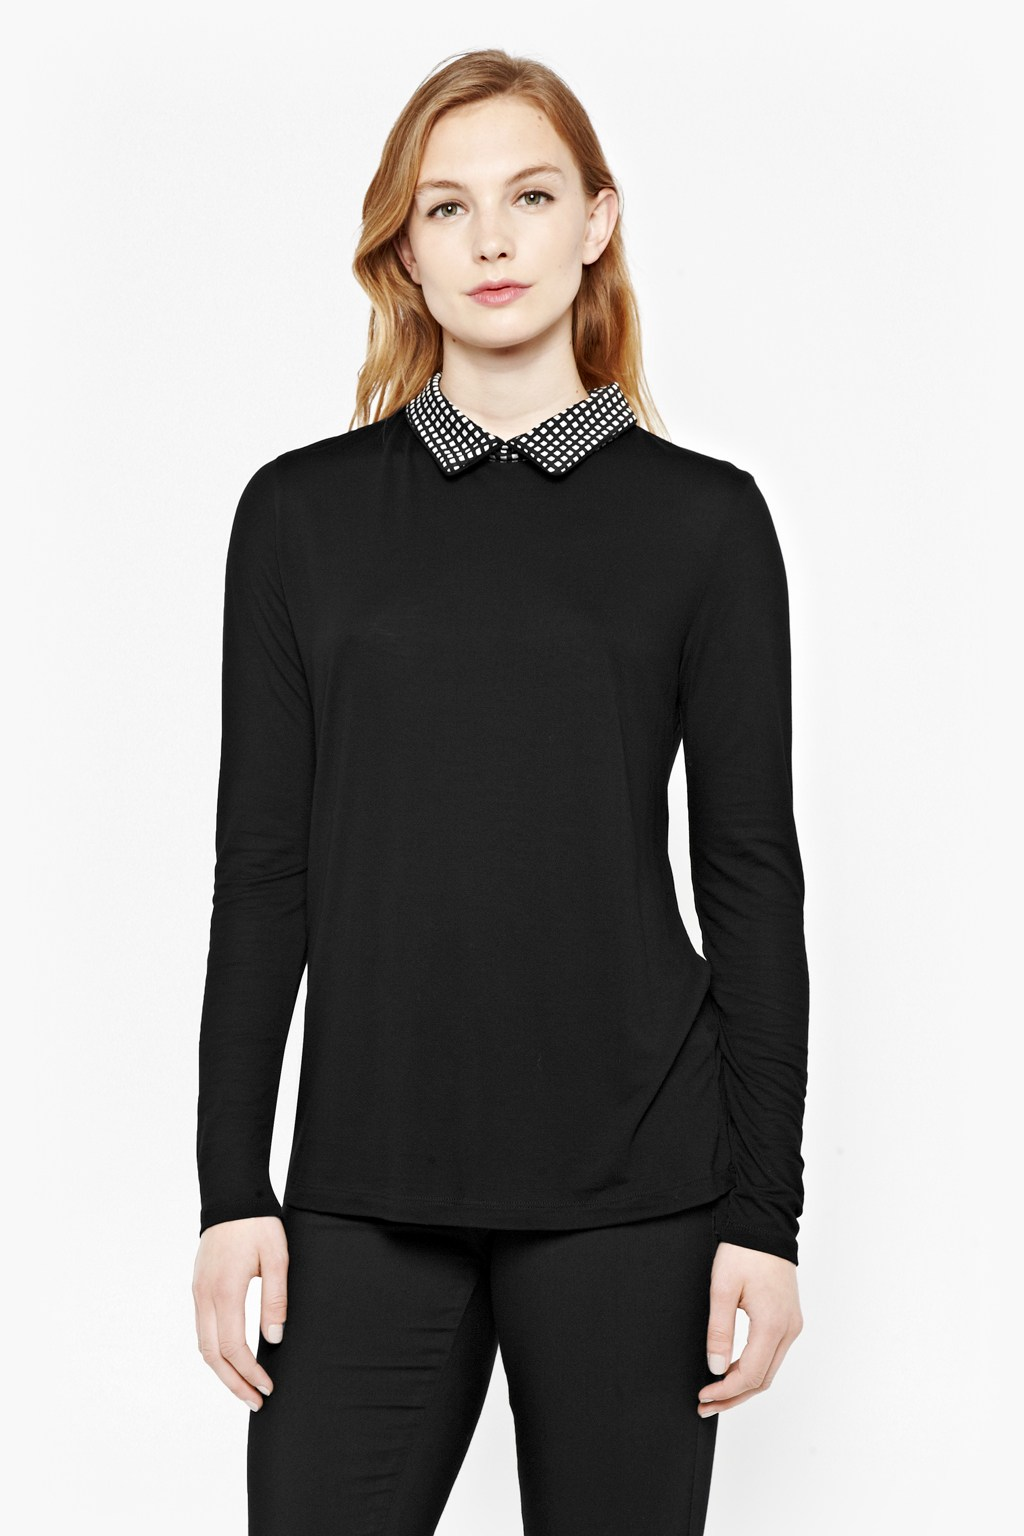 Domino Gingham Shirt Jumper | Women | Great Plains